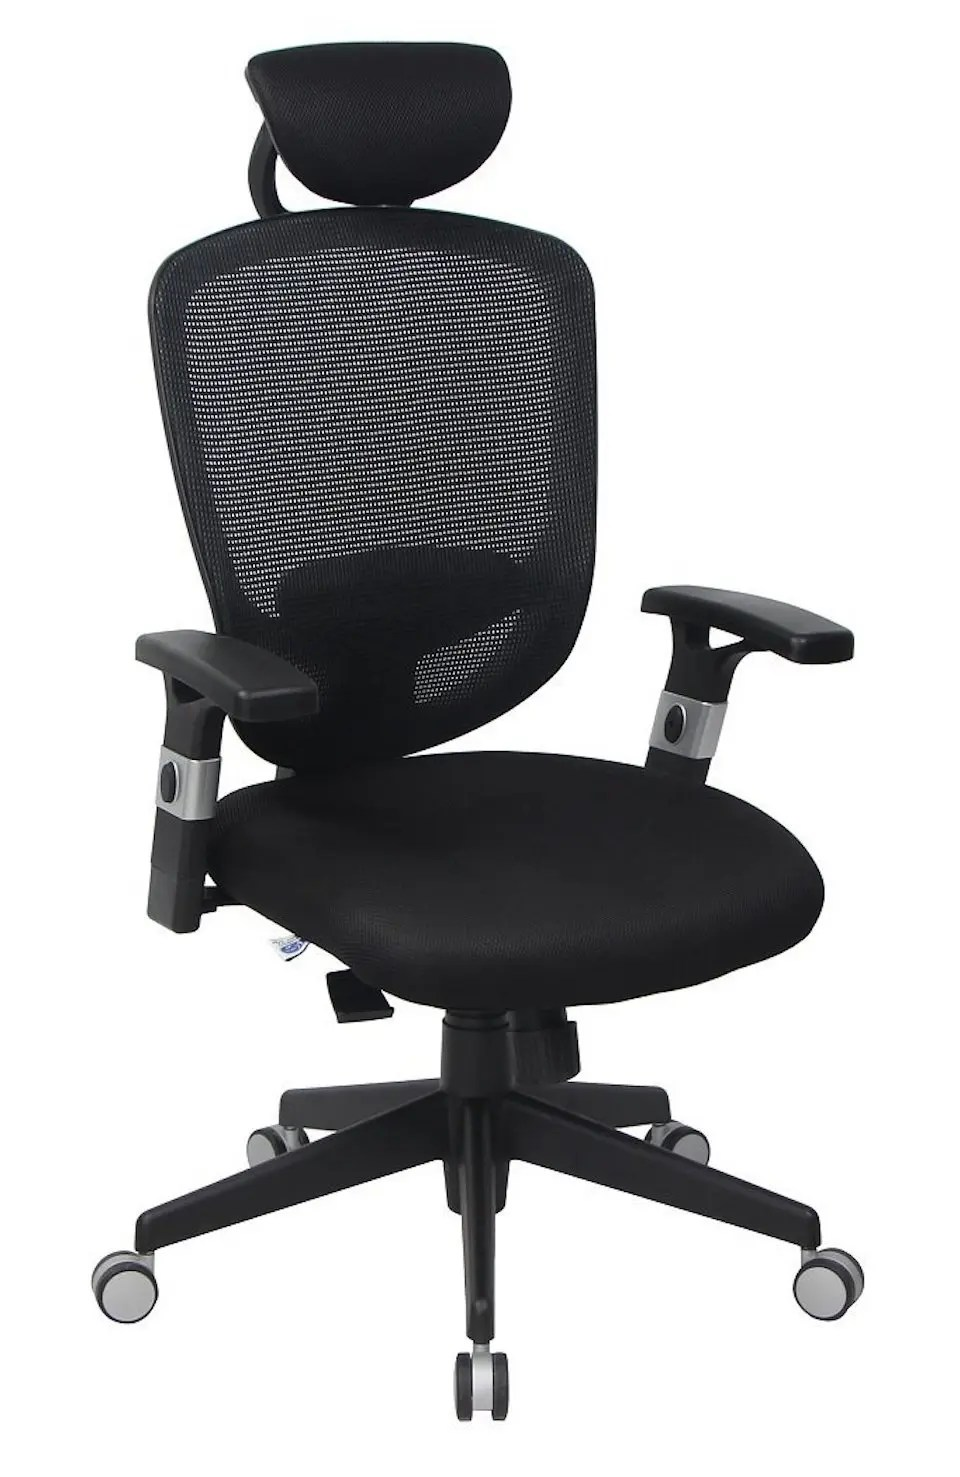 Back Supports For Chairs The 7 Best Budget Office Chairs For Every Need Review Geek